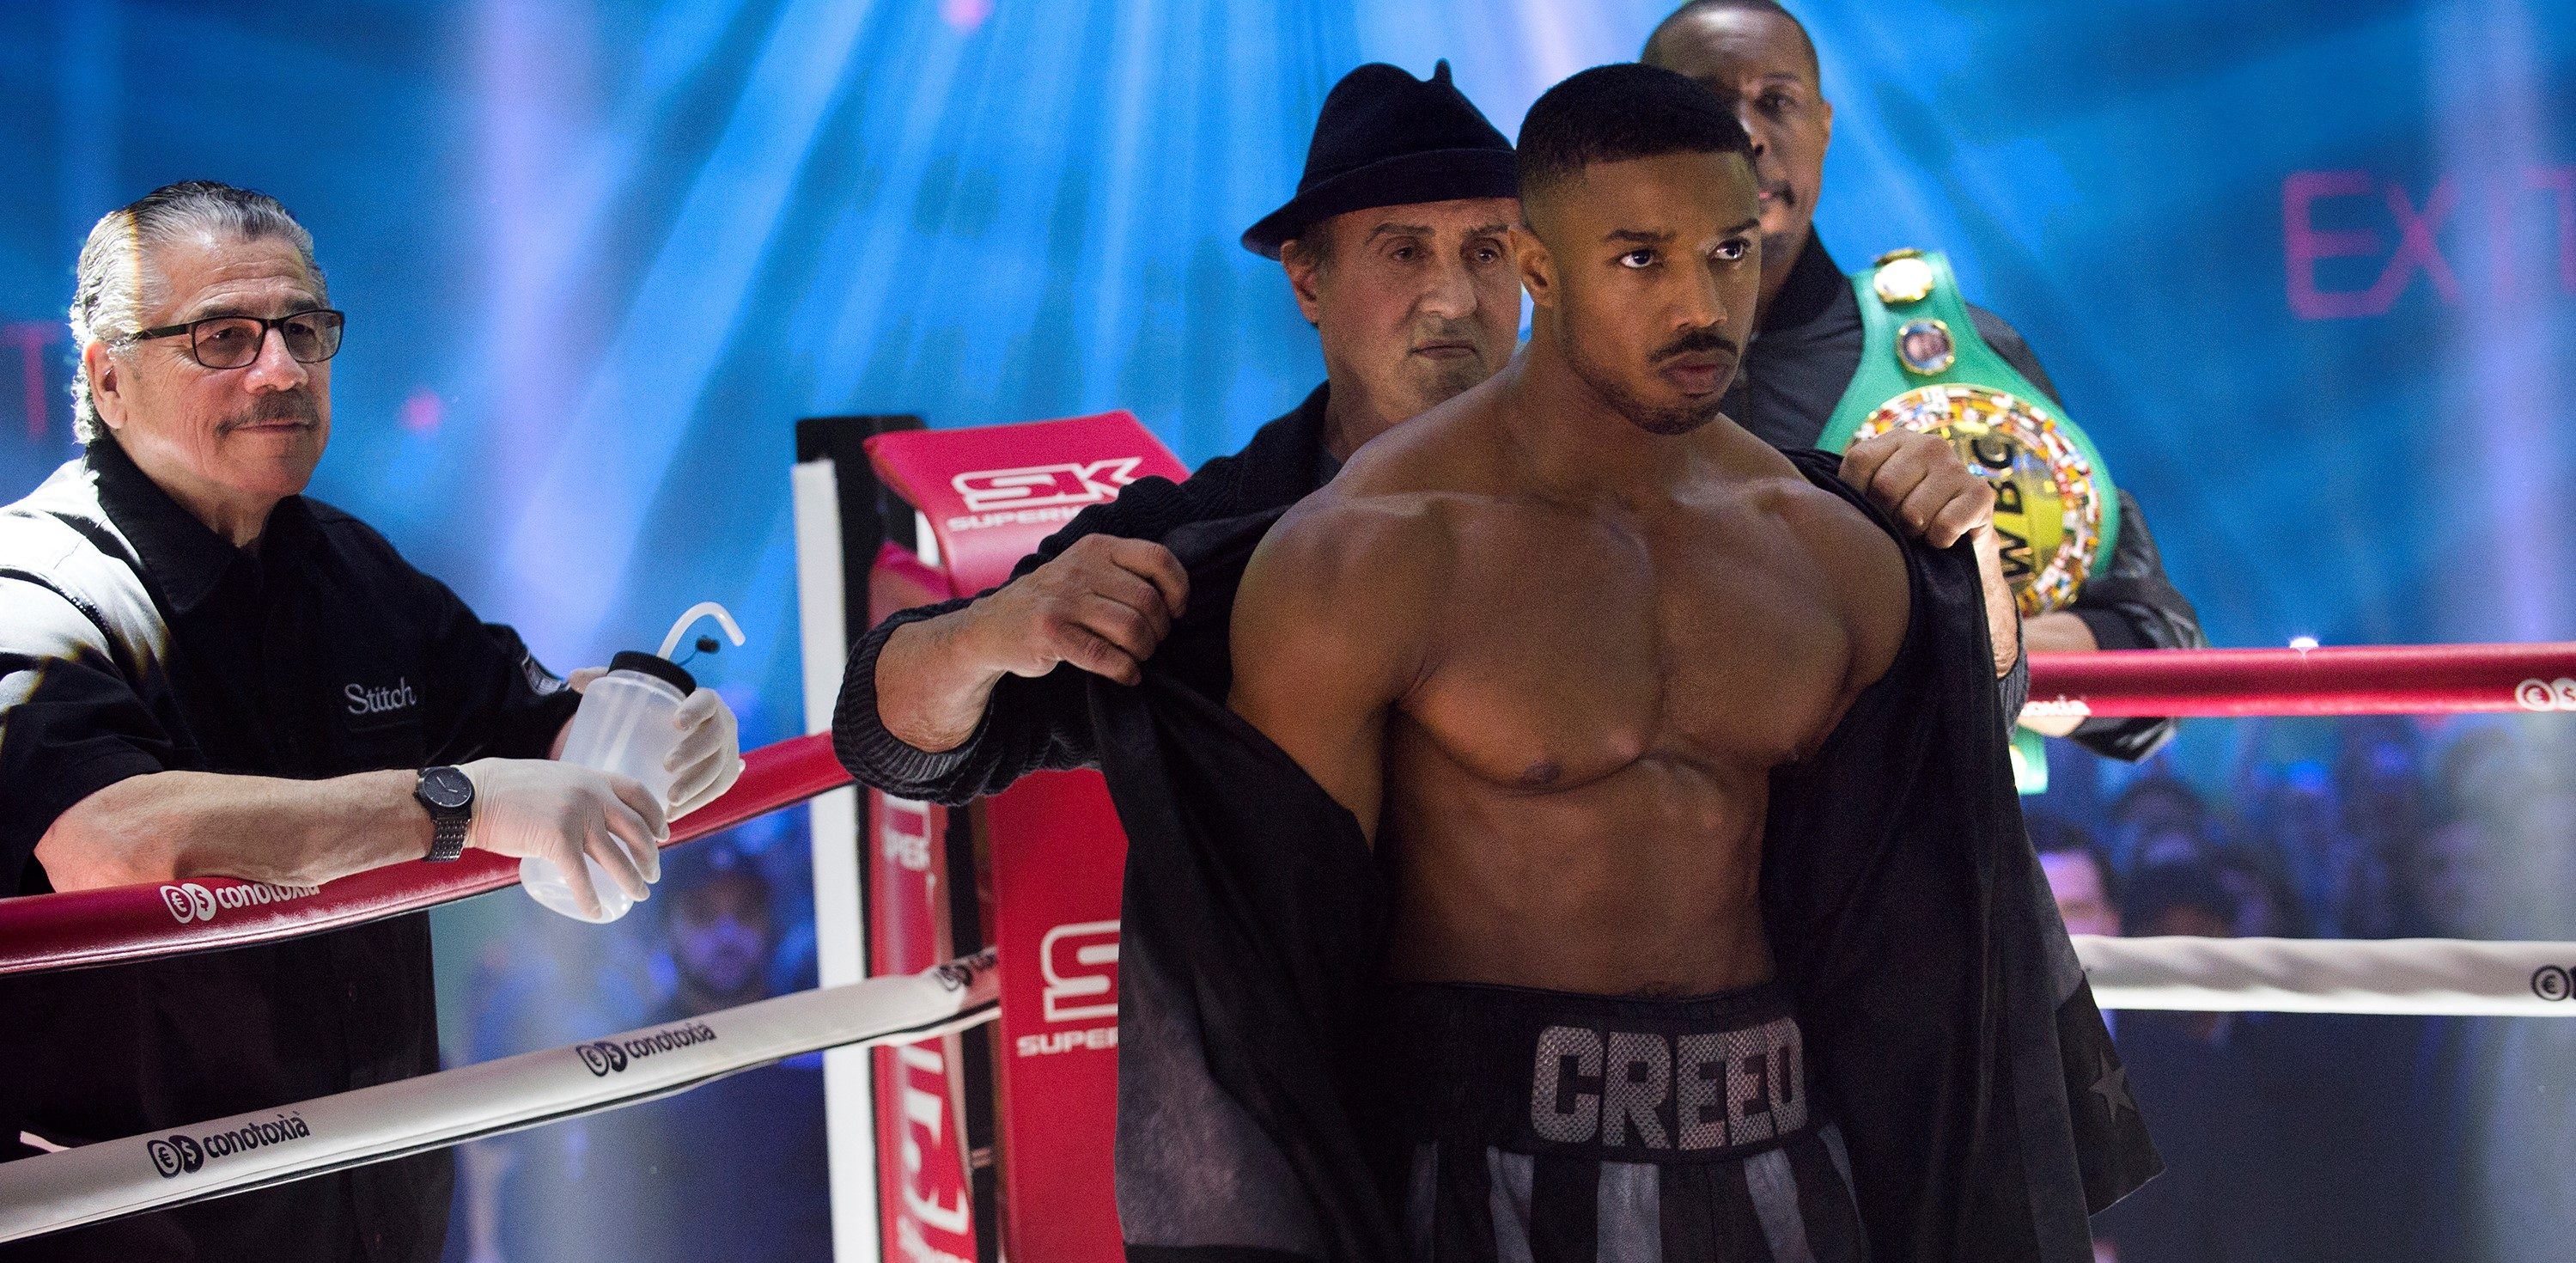 Sylvester Stallone's Rocky Balboa Will Not Return in 'Creed III'